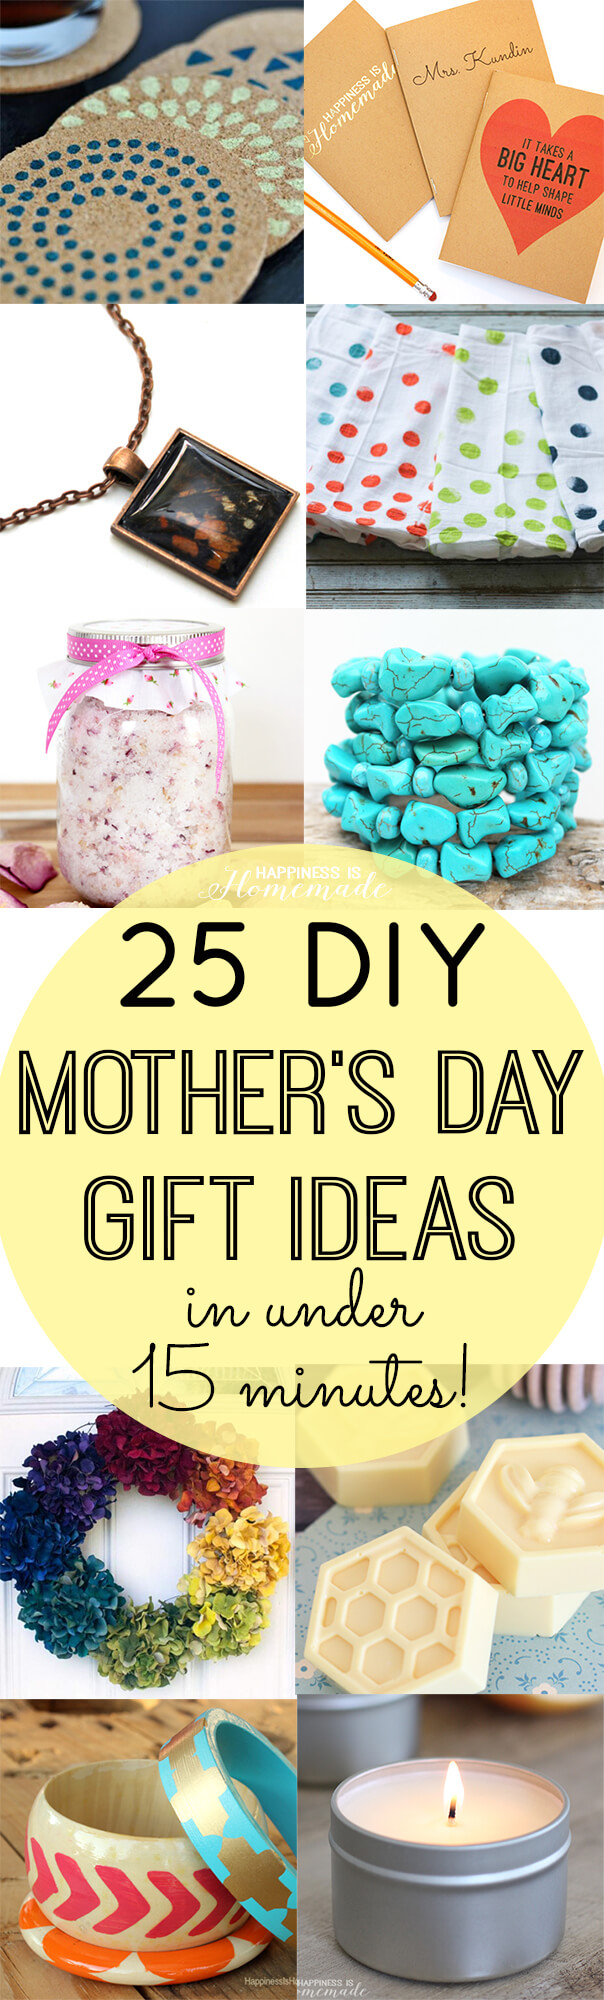 Diy mother 39 s day gifts in under 15 minutes happiness is Mothers day presents diy